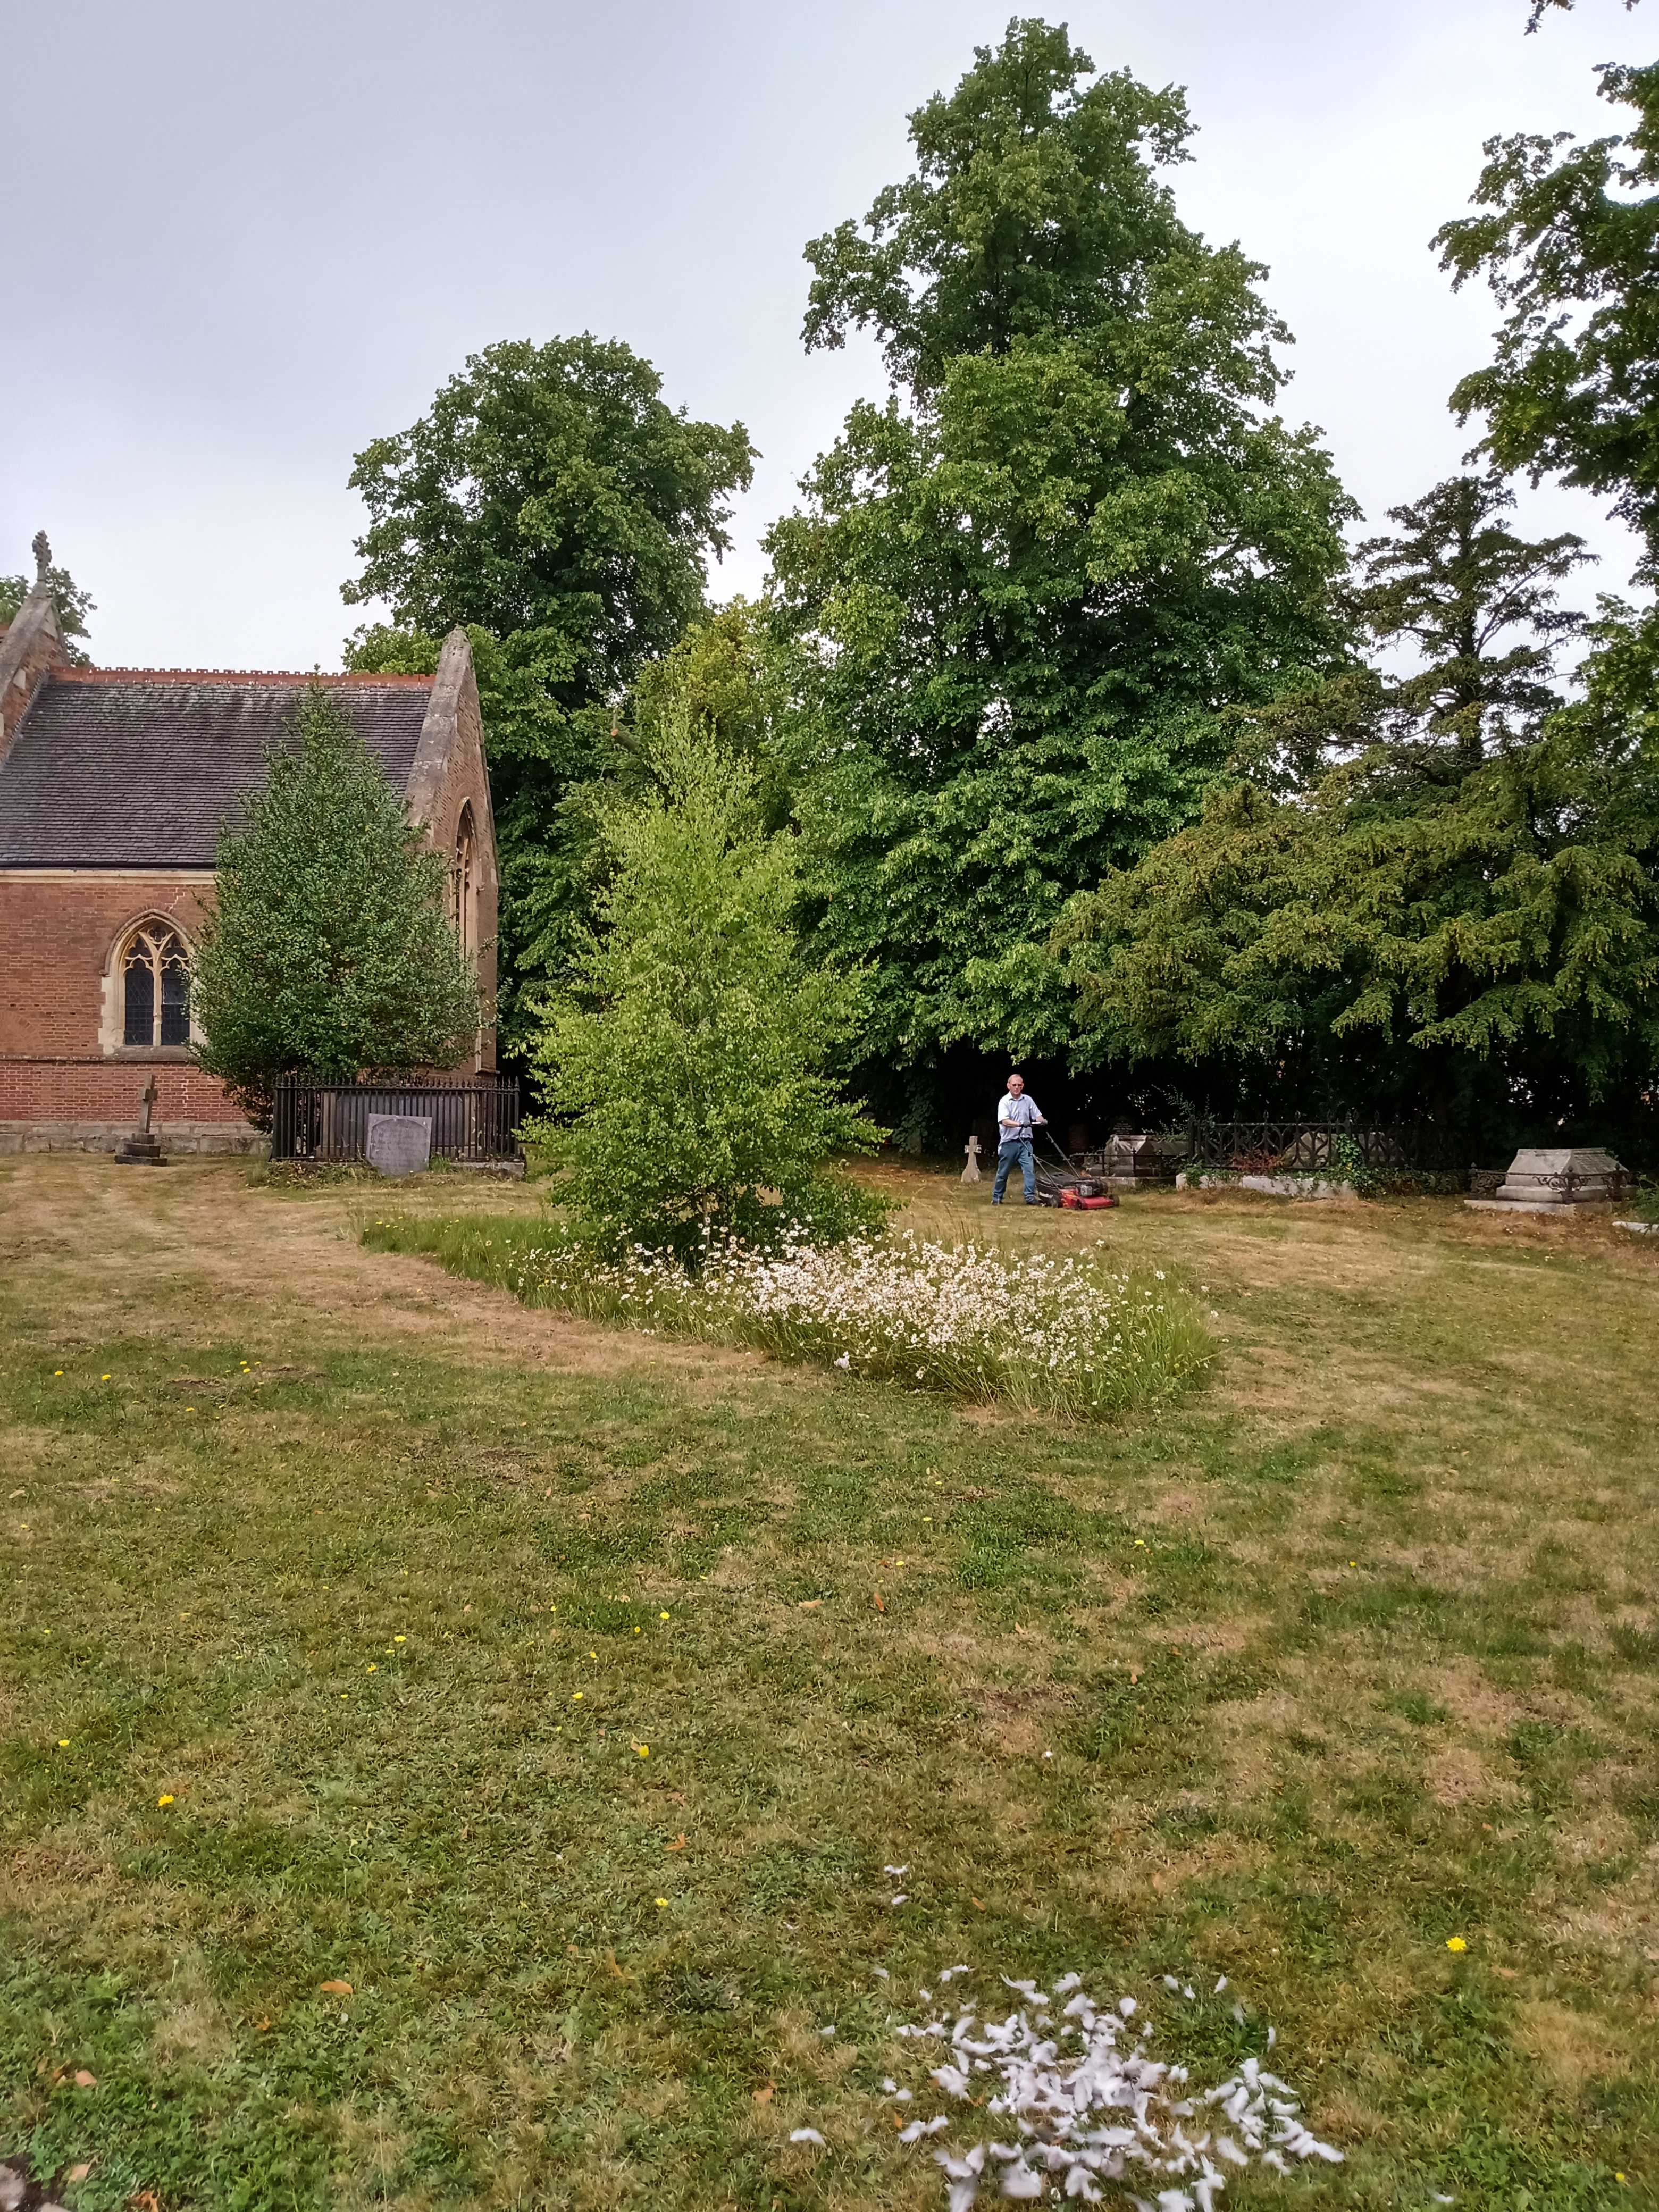 Mike mowing the lawns of the church grounds.